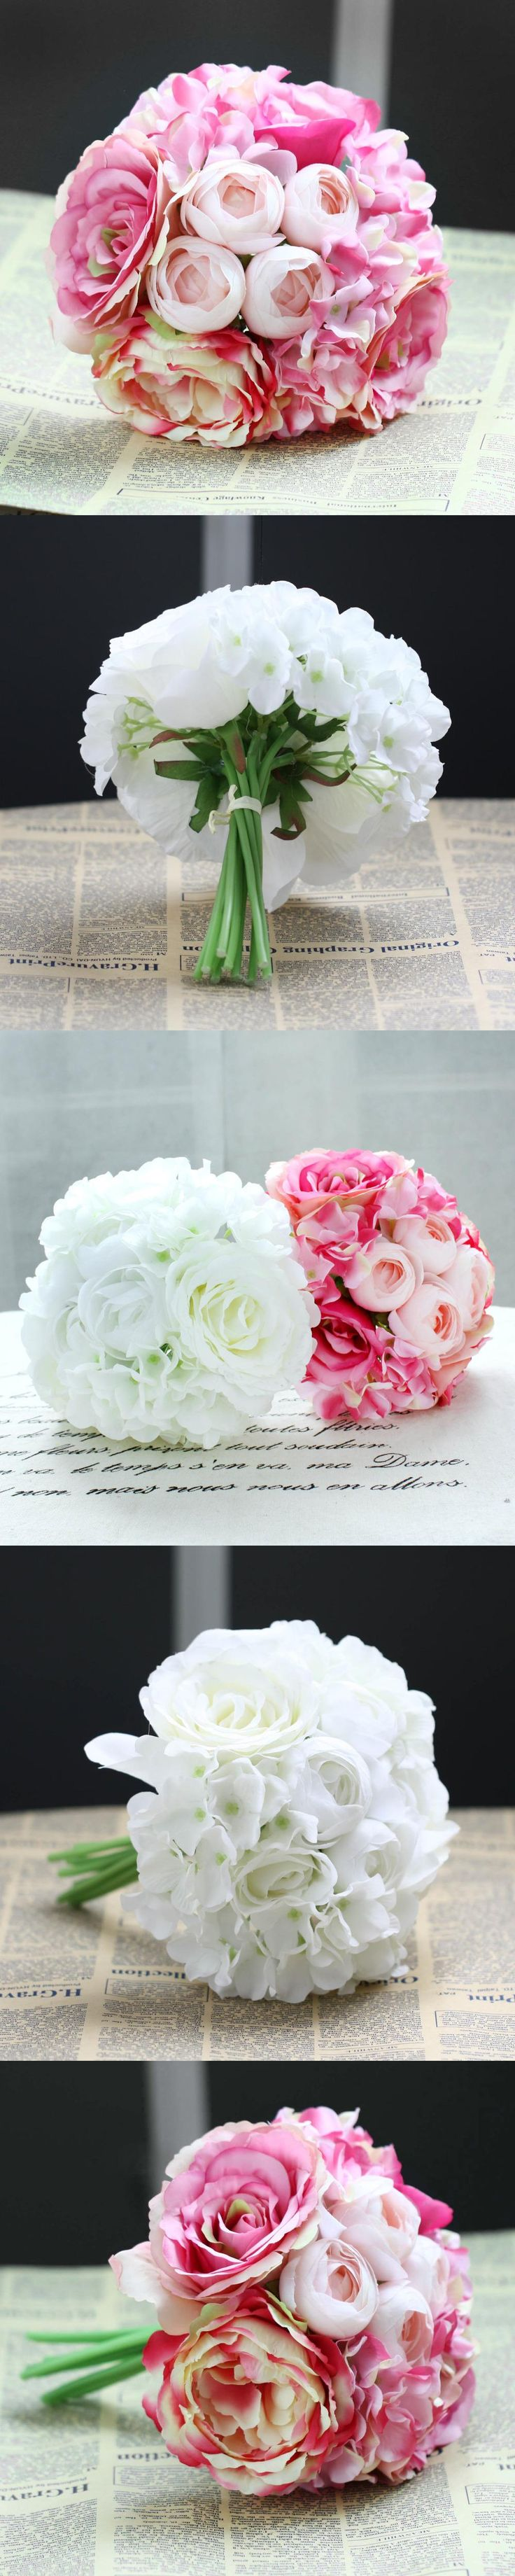 11Pcs/lot Peony Rose Silk Artificial Flower Bridal Bridesmaid Hydrangeas Bouquet Wedding Flowers Latex Real Touch Flowers Flora